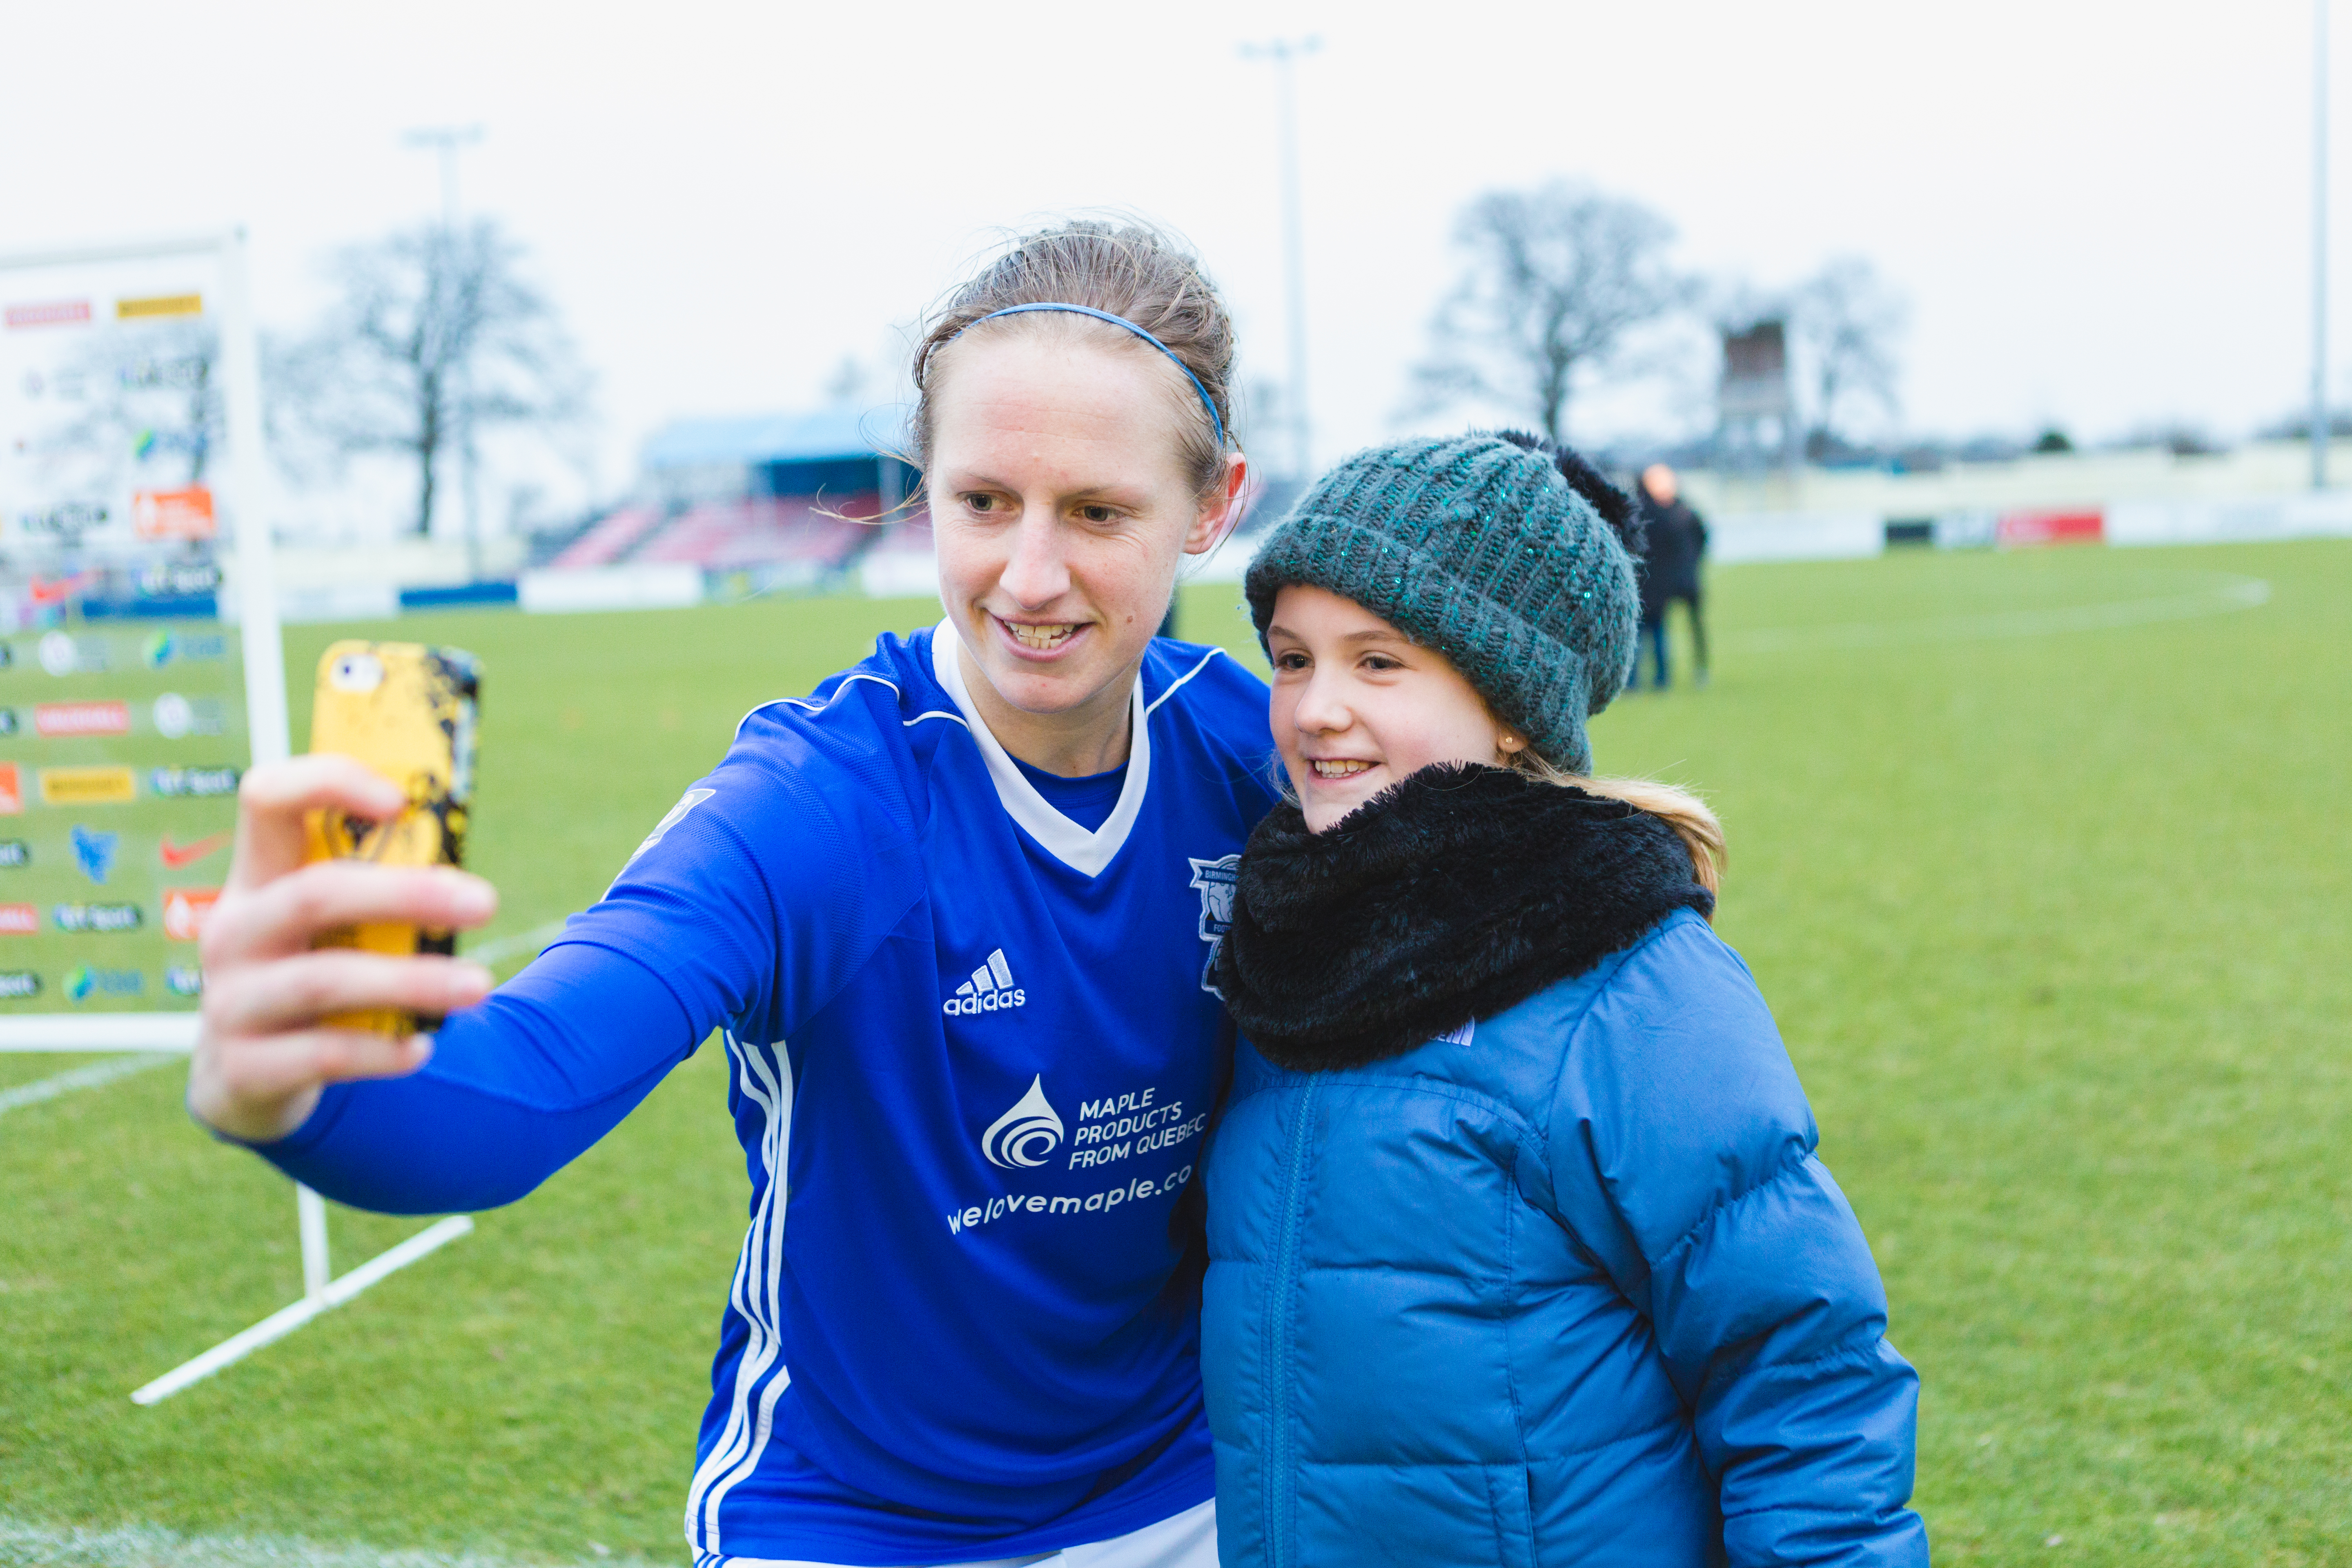 Birmingham City Ladies FC player taking a selfie with a fan